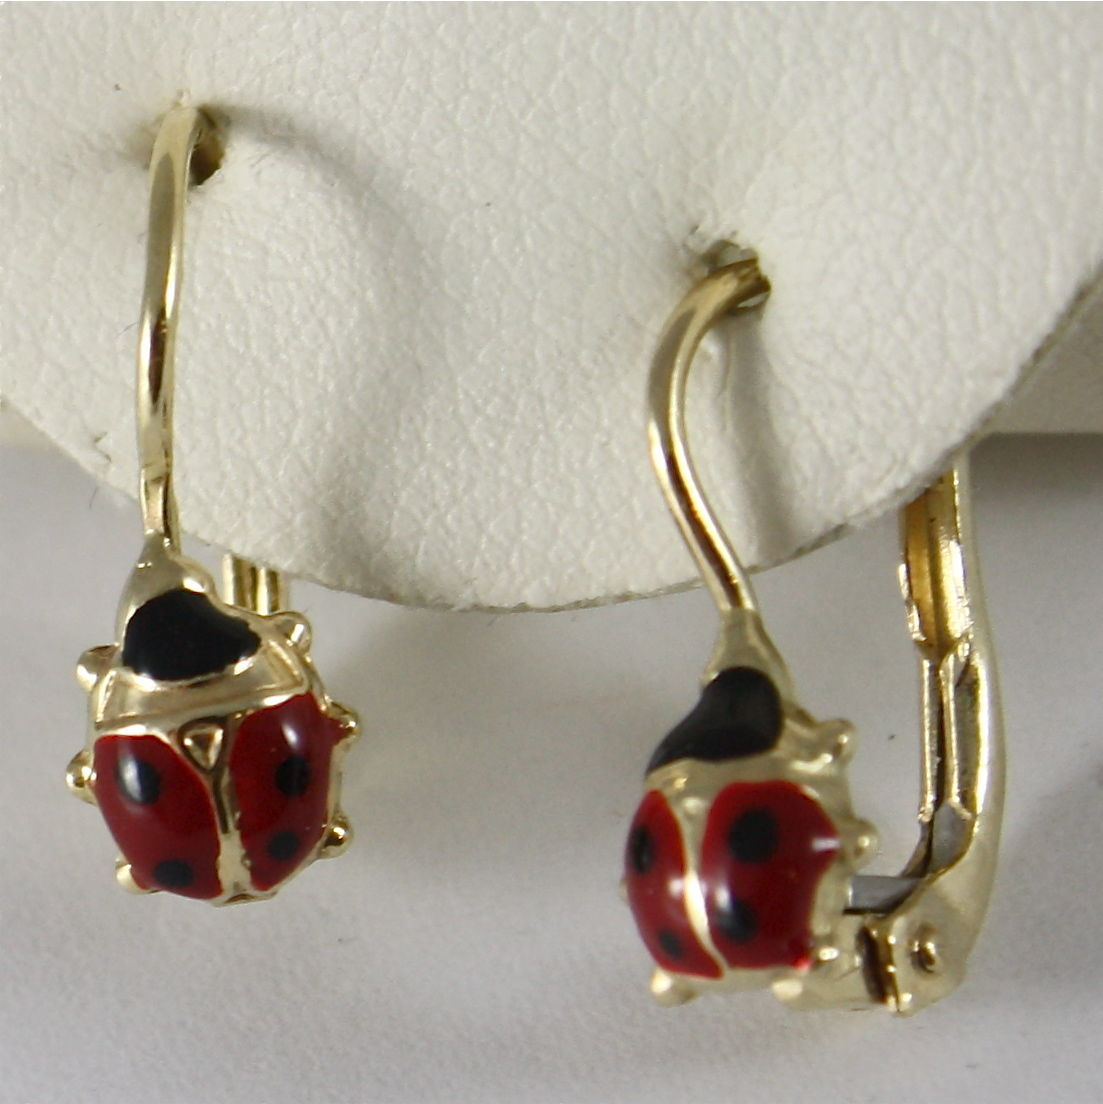 SOLID 18K YELLOW GOLD PENDANT EARRINGS LADYBIRD, FINELY ENAMELLED, MADE IN ITALY